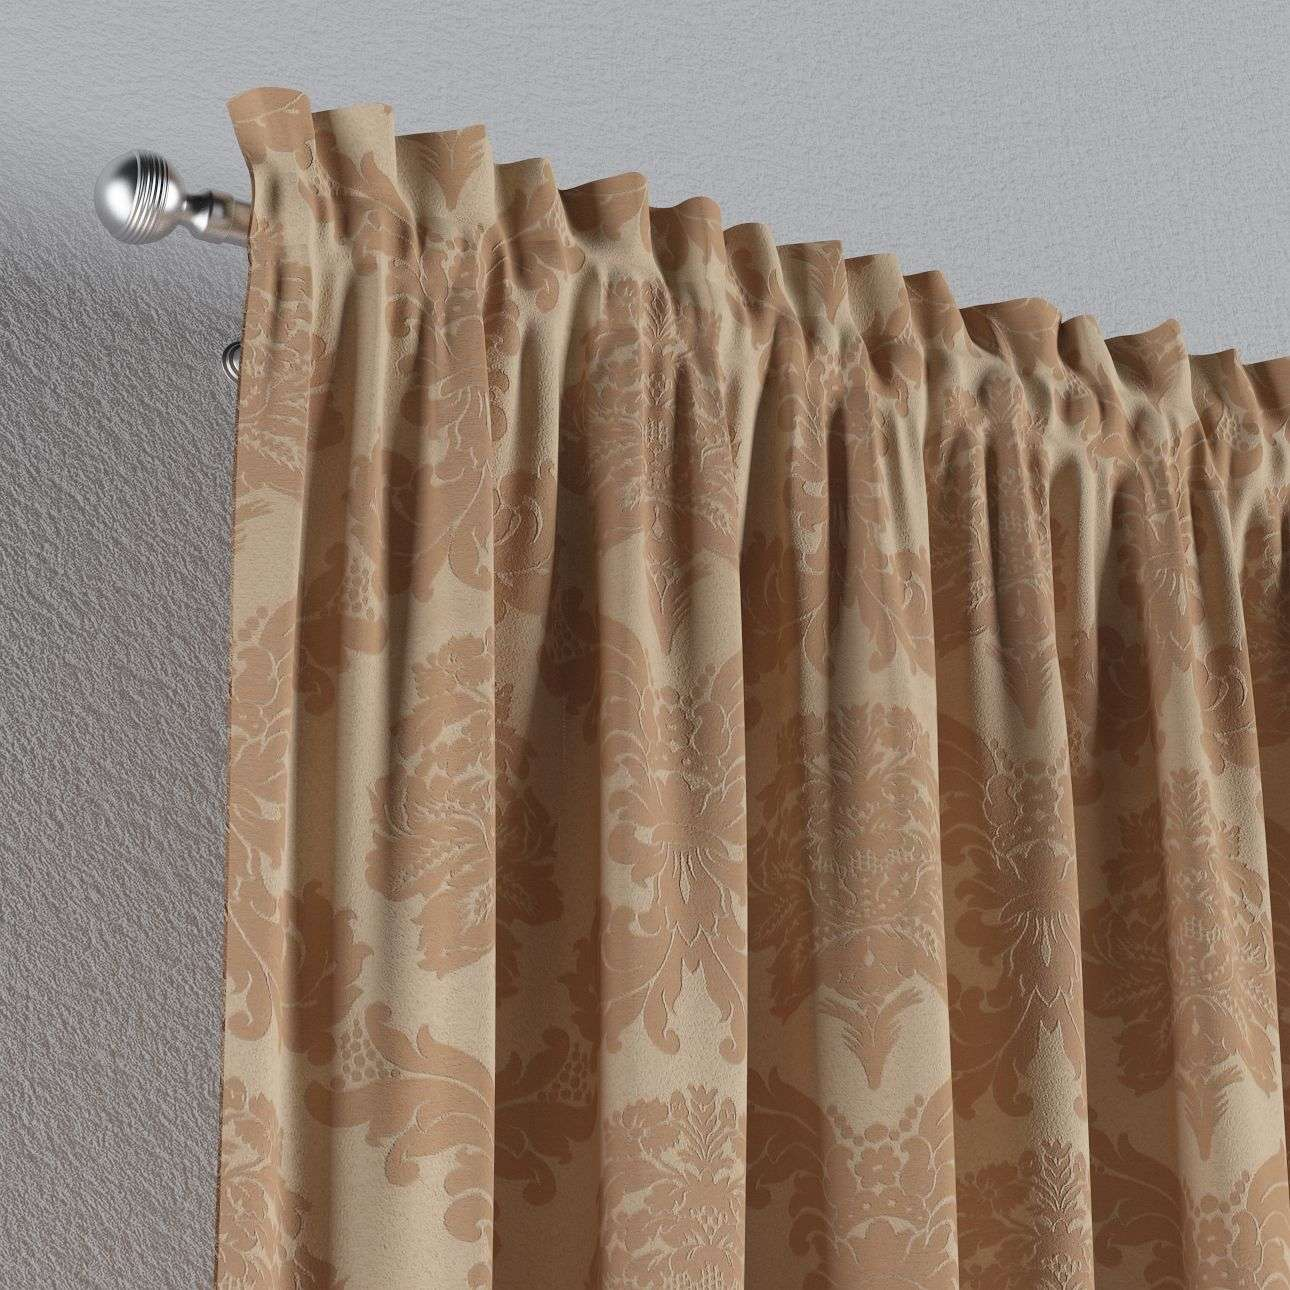 Slot and frill curtains 130 × 260 cm (51 × 102 inch) in collection Damasco, fabric: 613-04